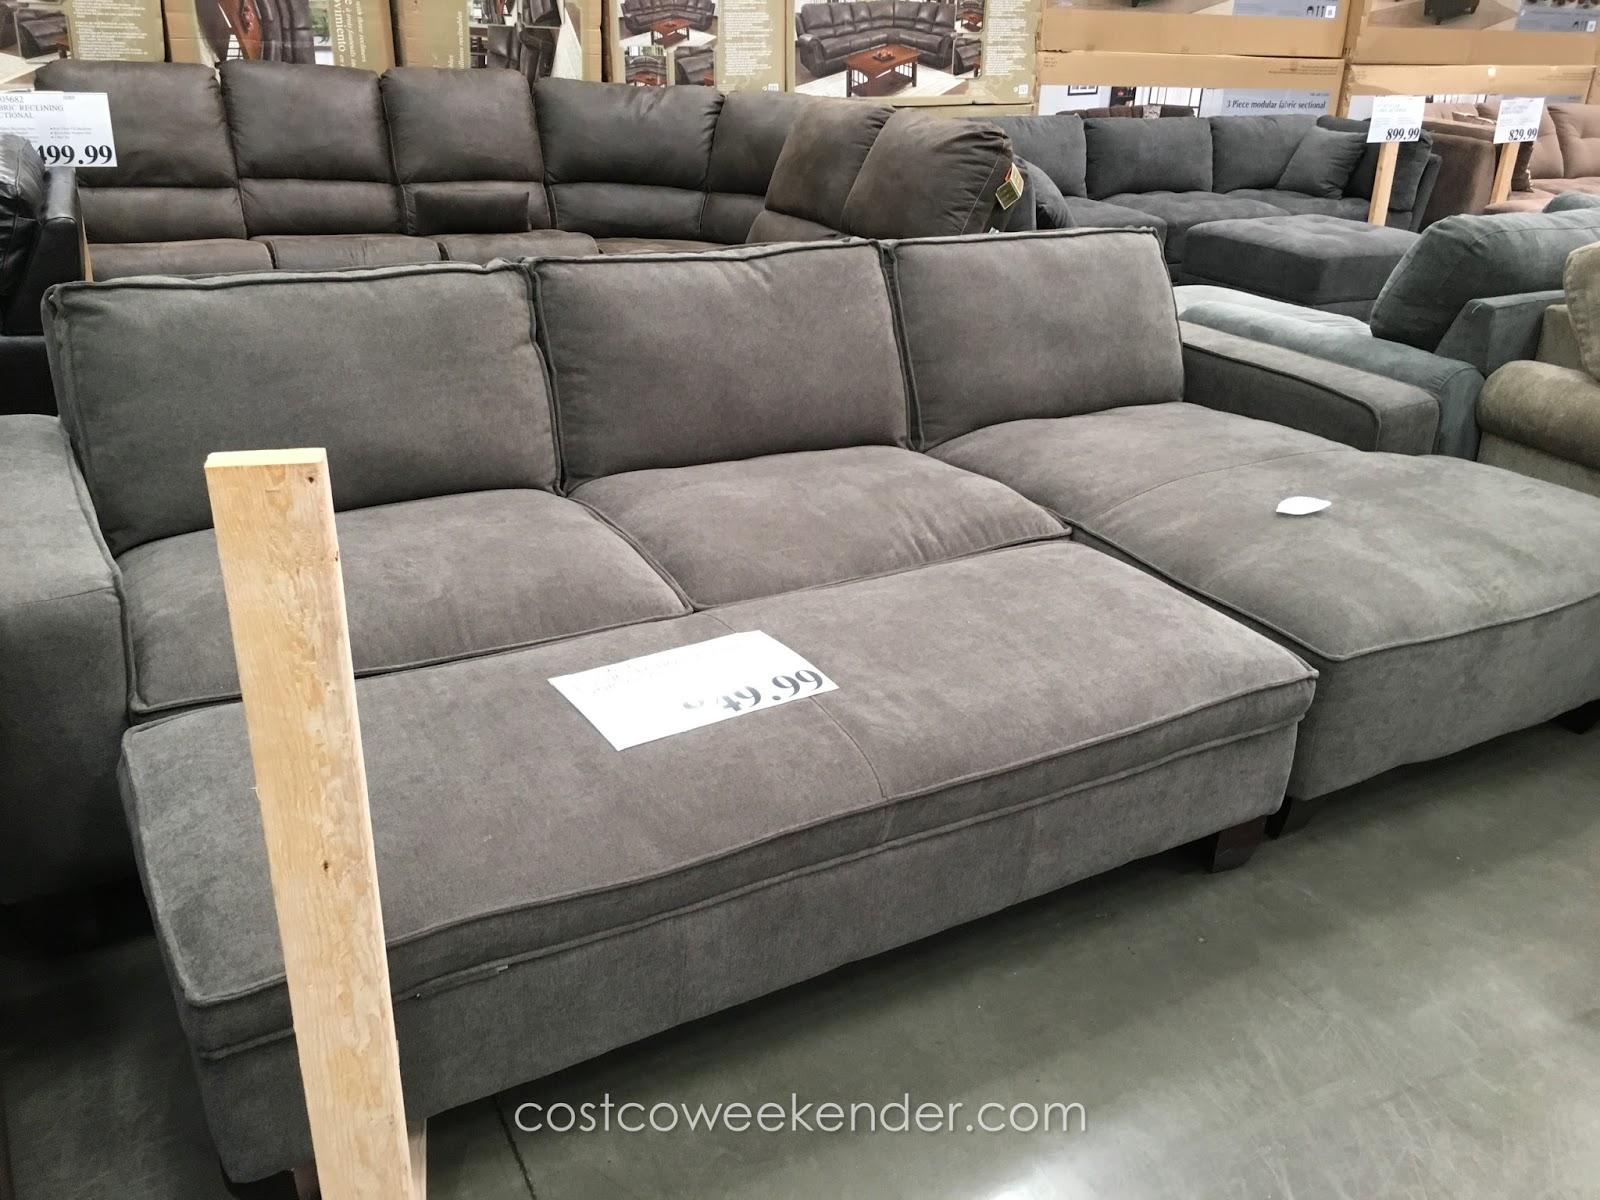 Chaise sectional sofa with storage ottoman costco weekender for Sectional sofa bed with storage chaise